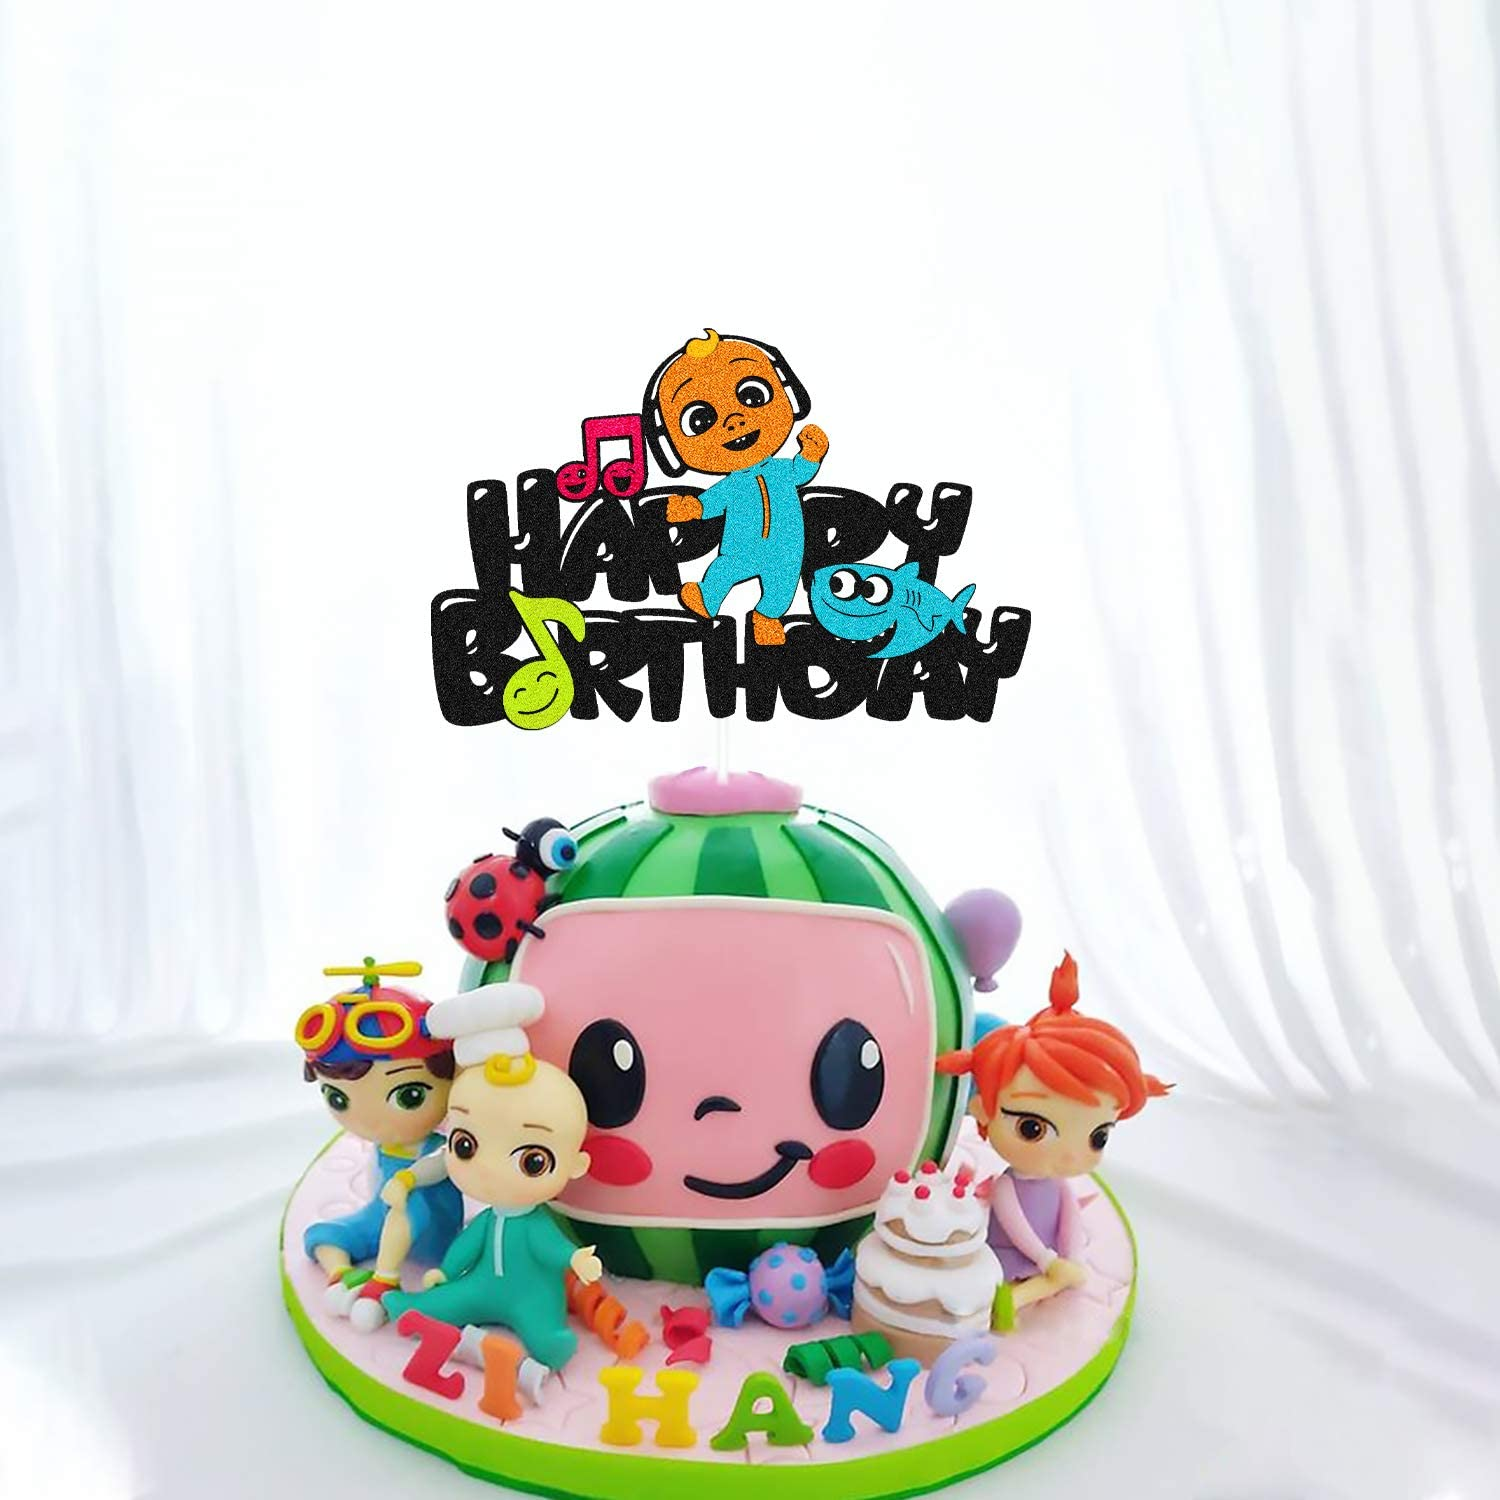 Double Sided Baby-JJ Cake Topper for Coco-melon Themed Birthday Cake Decorations Children Kids Boy Girl 1st 2nd 3rd Happy Birthday Baby Shower Party Supplies